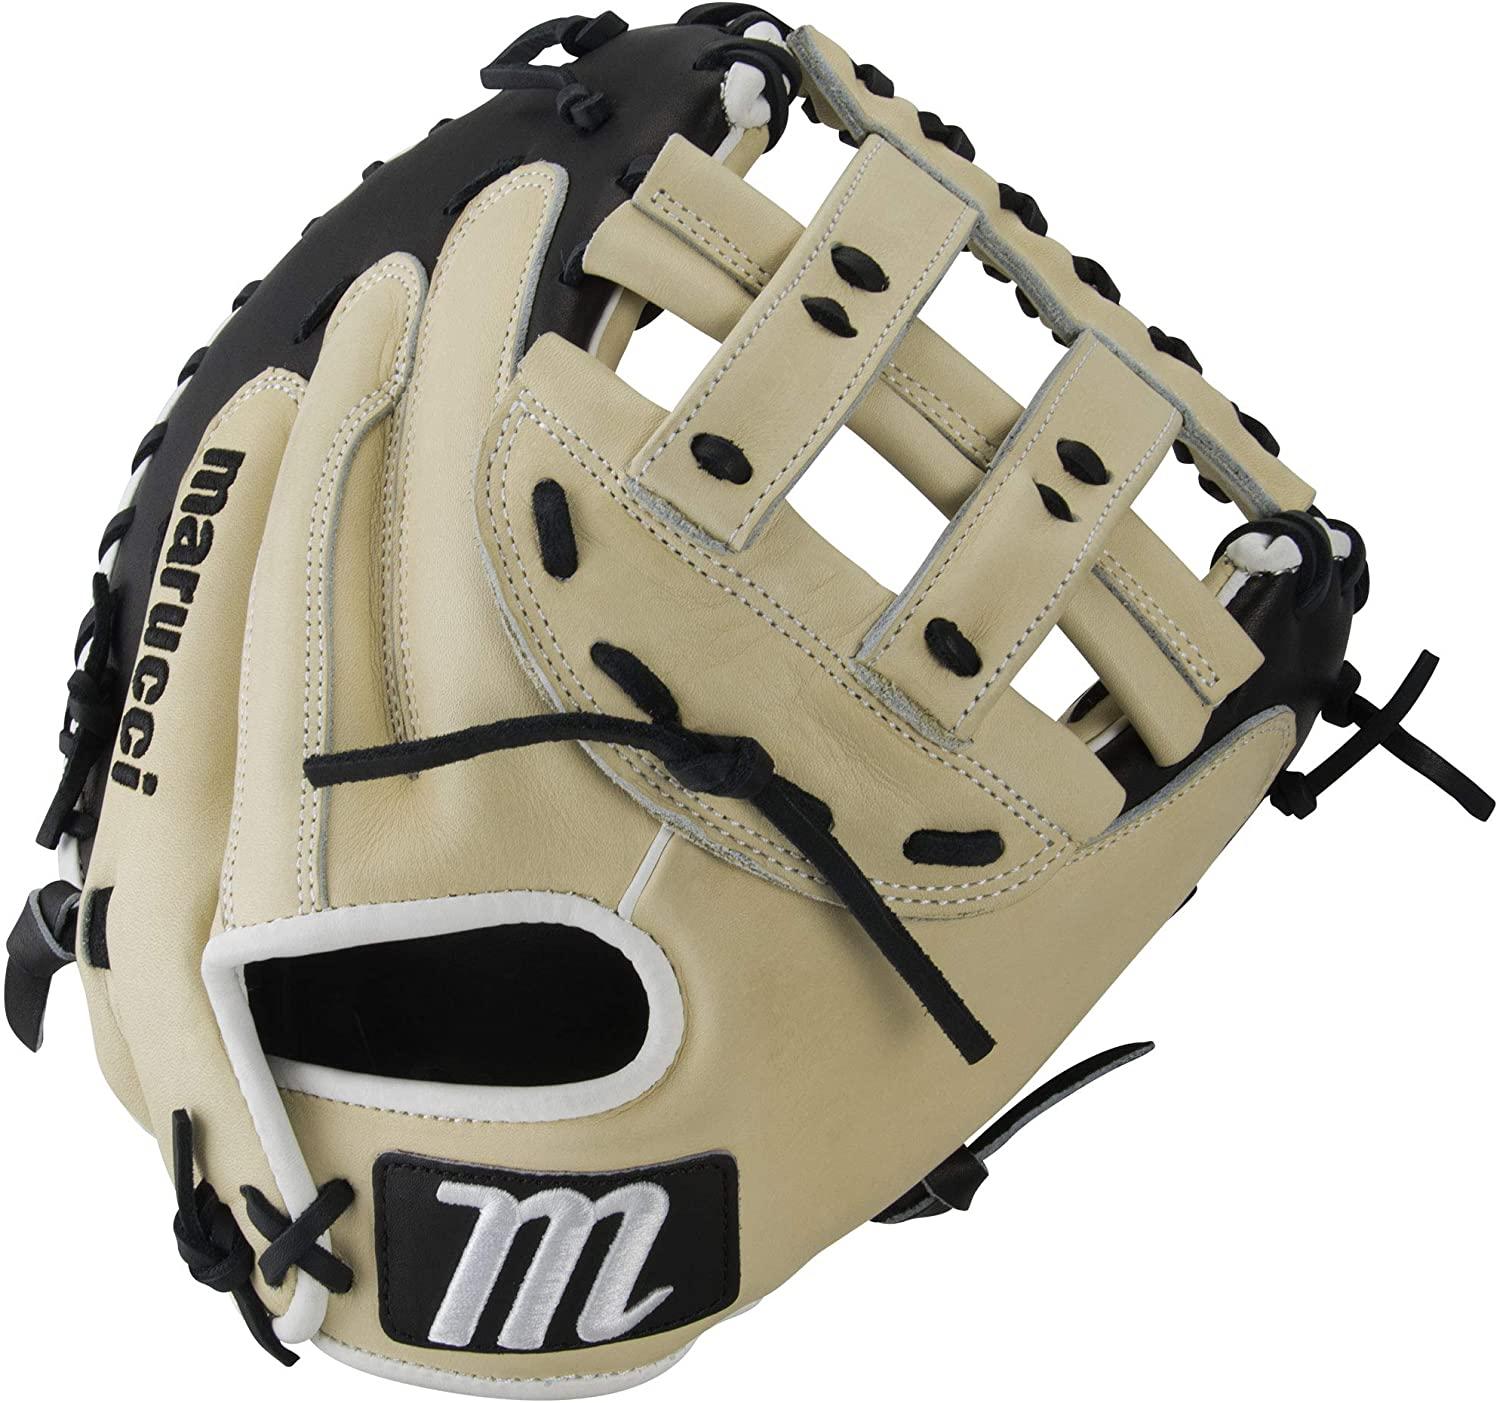 marucci-magnolia-series-mg2fp-34-fast-pitch-catchers-mitt-h-web-right-hand-throw MFGMG2FP-CMBK-RightHandThrow   Premium Japanese-tanned steer hide leather provides stiffness and rugged durability Cushioned